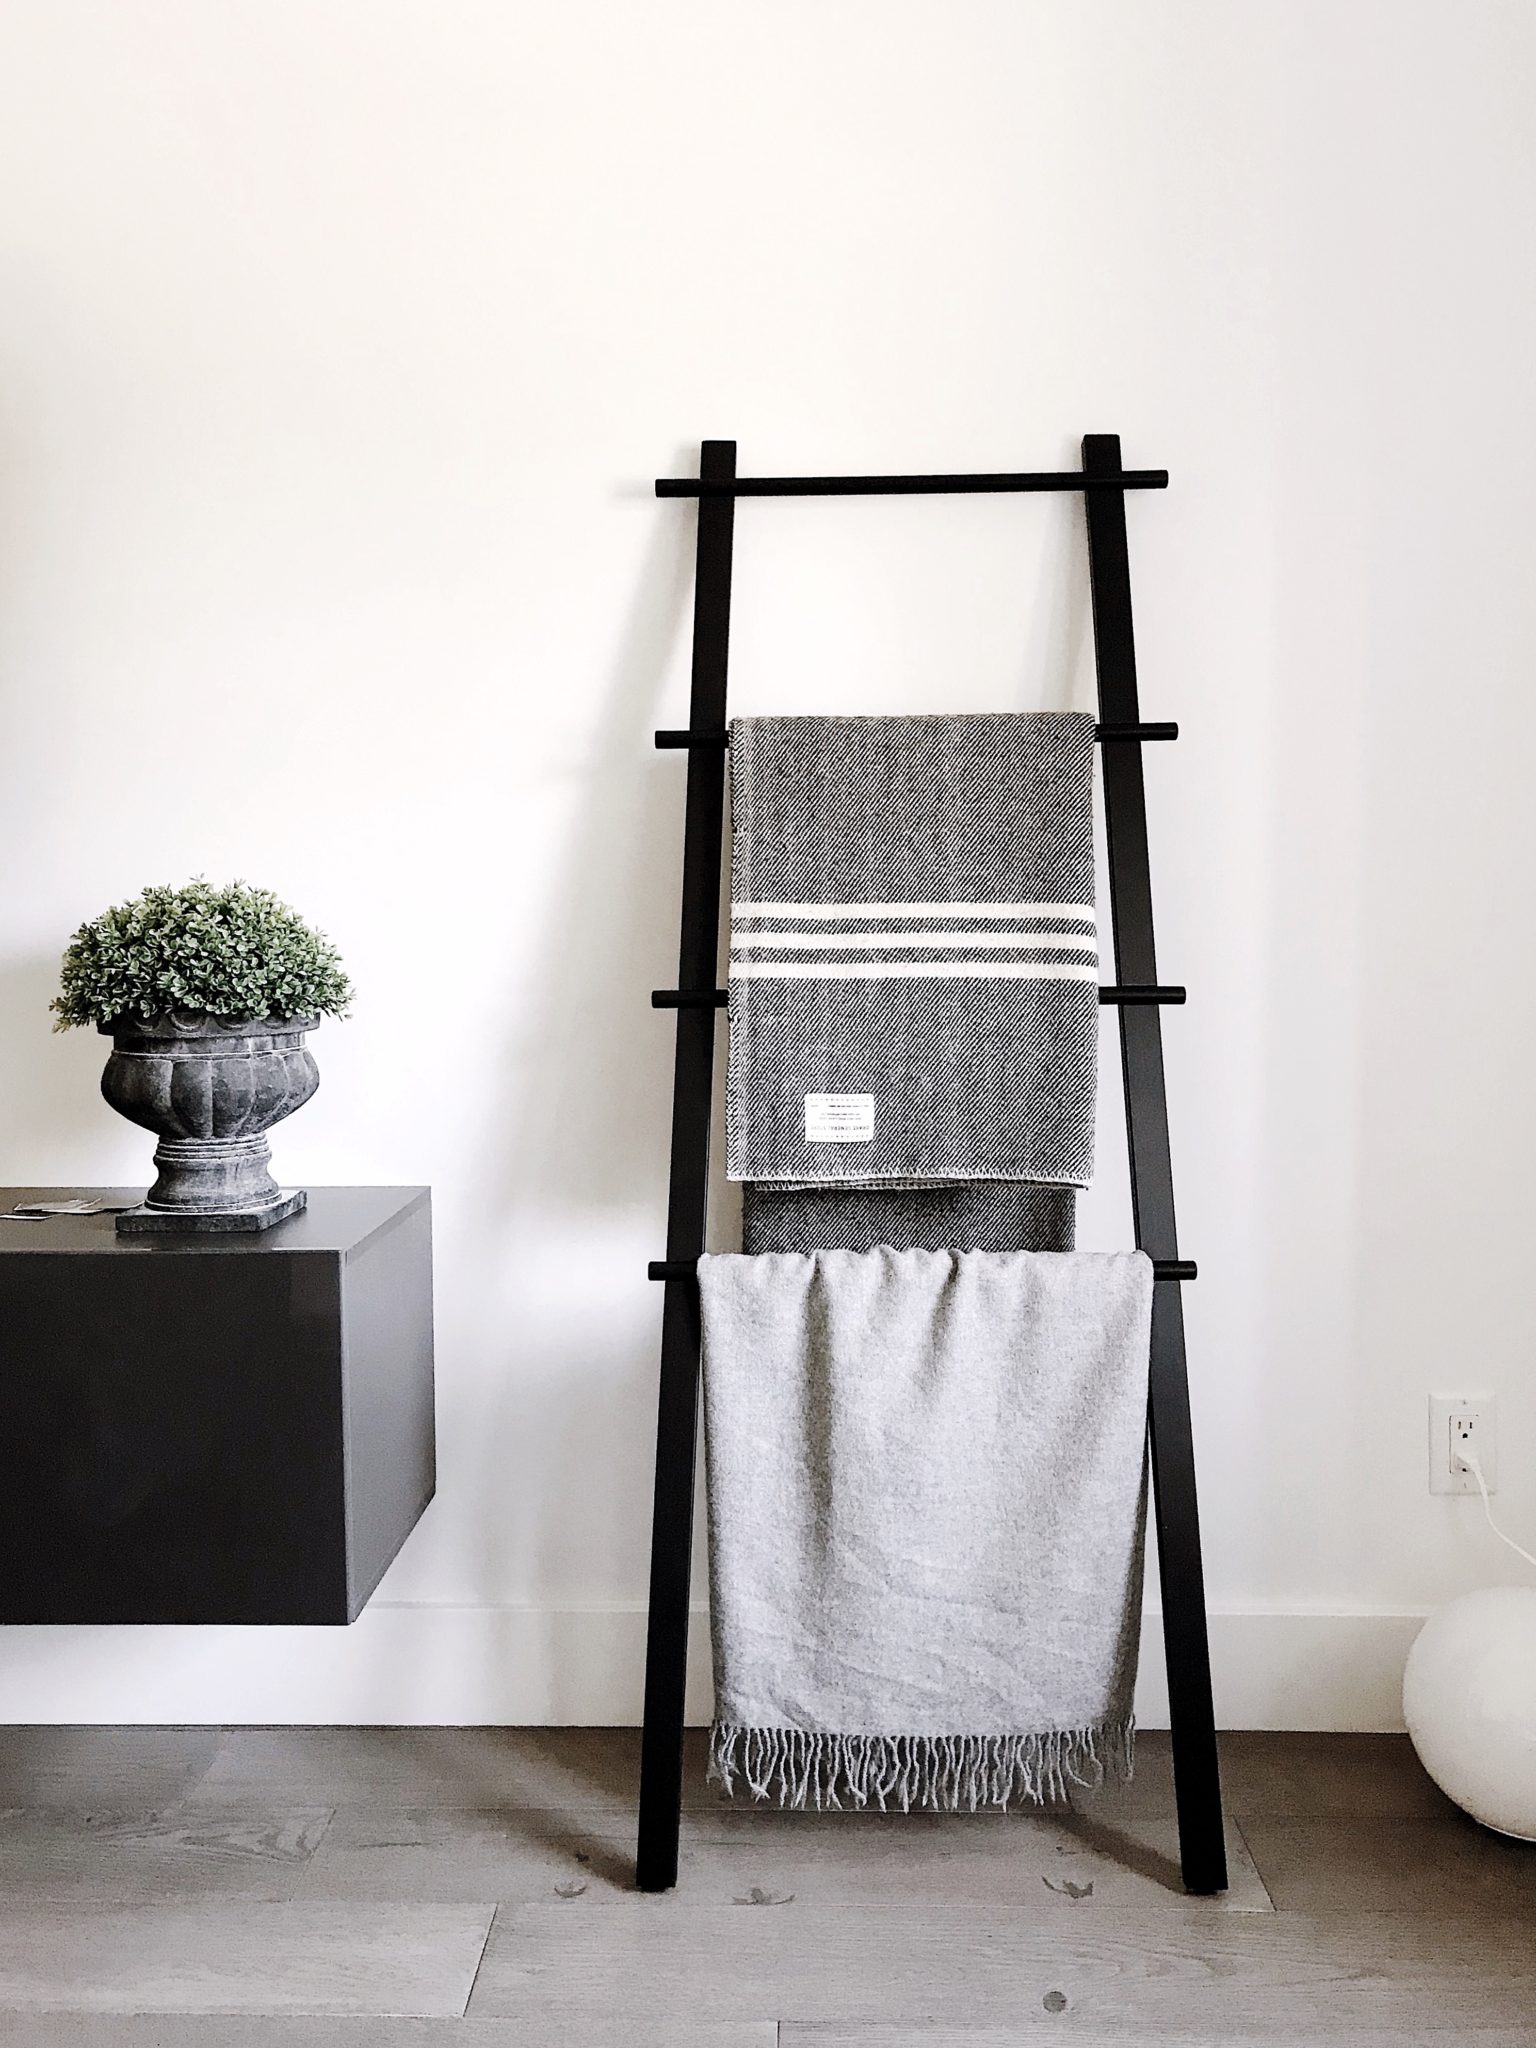 Home Inspired: Blanket Ladders